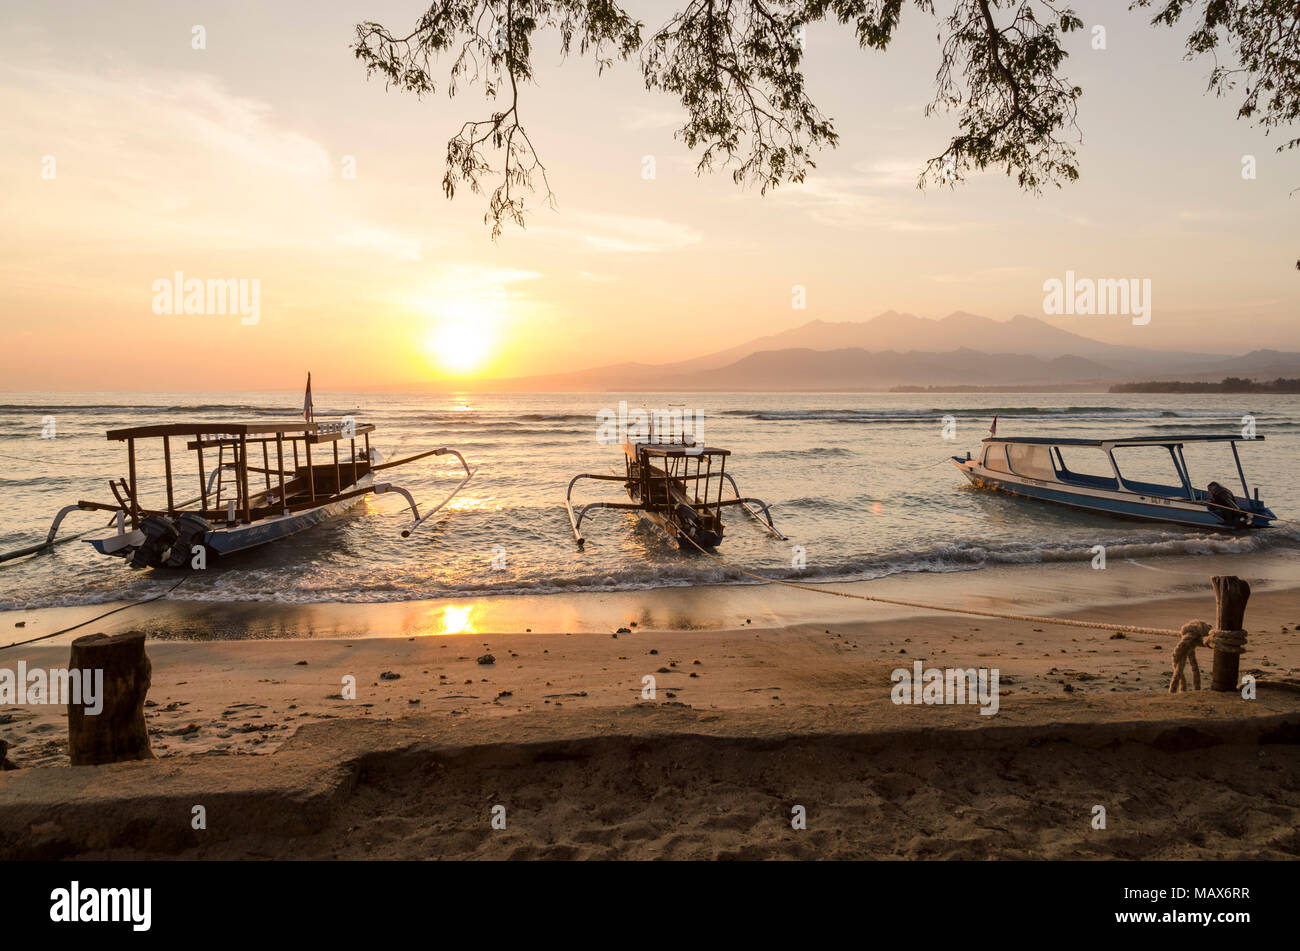 Gili Air sea at sunrise. Sunrise over the sea - Stock Image